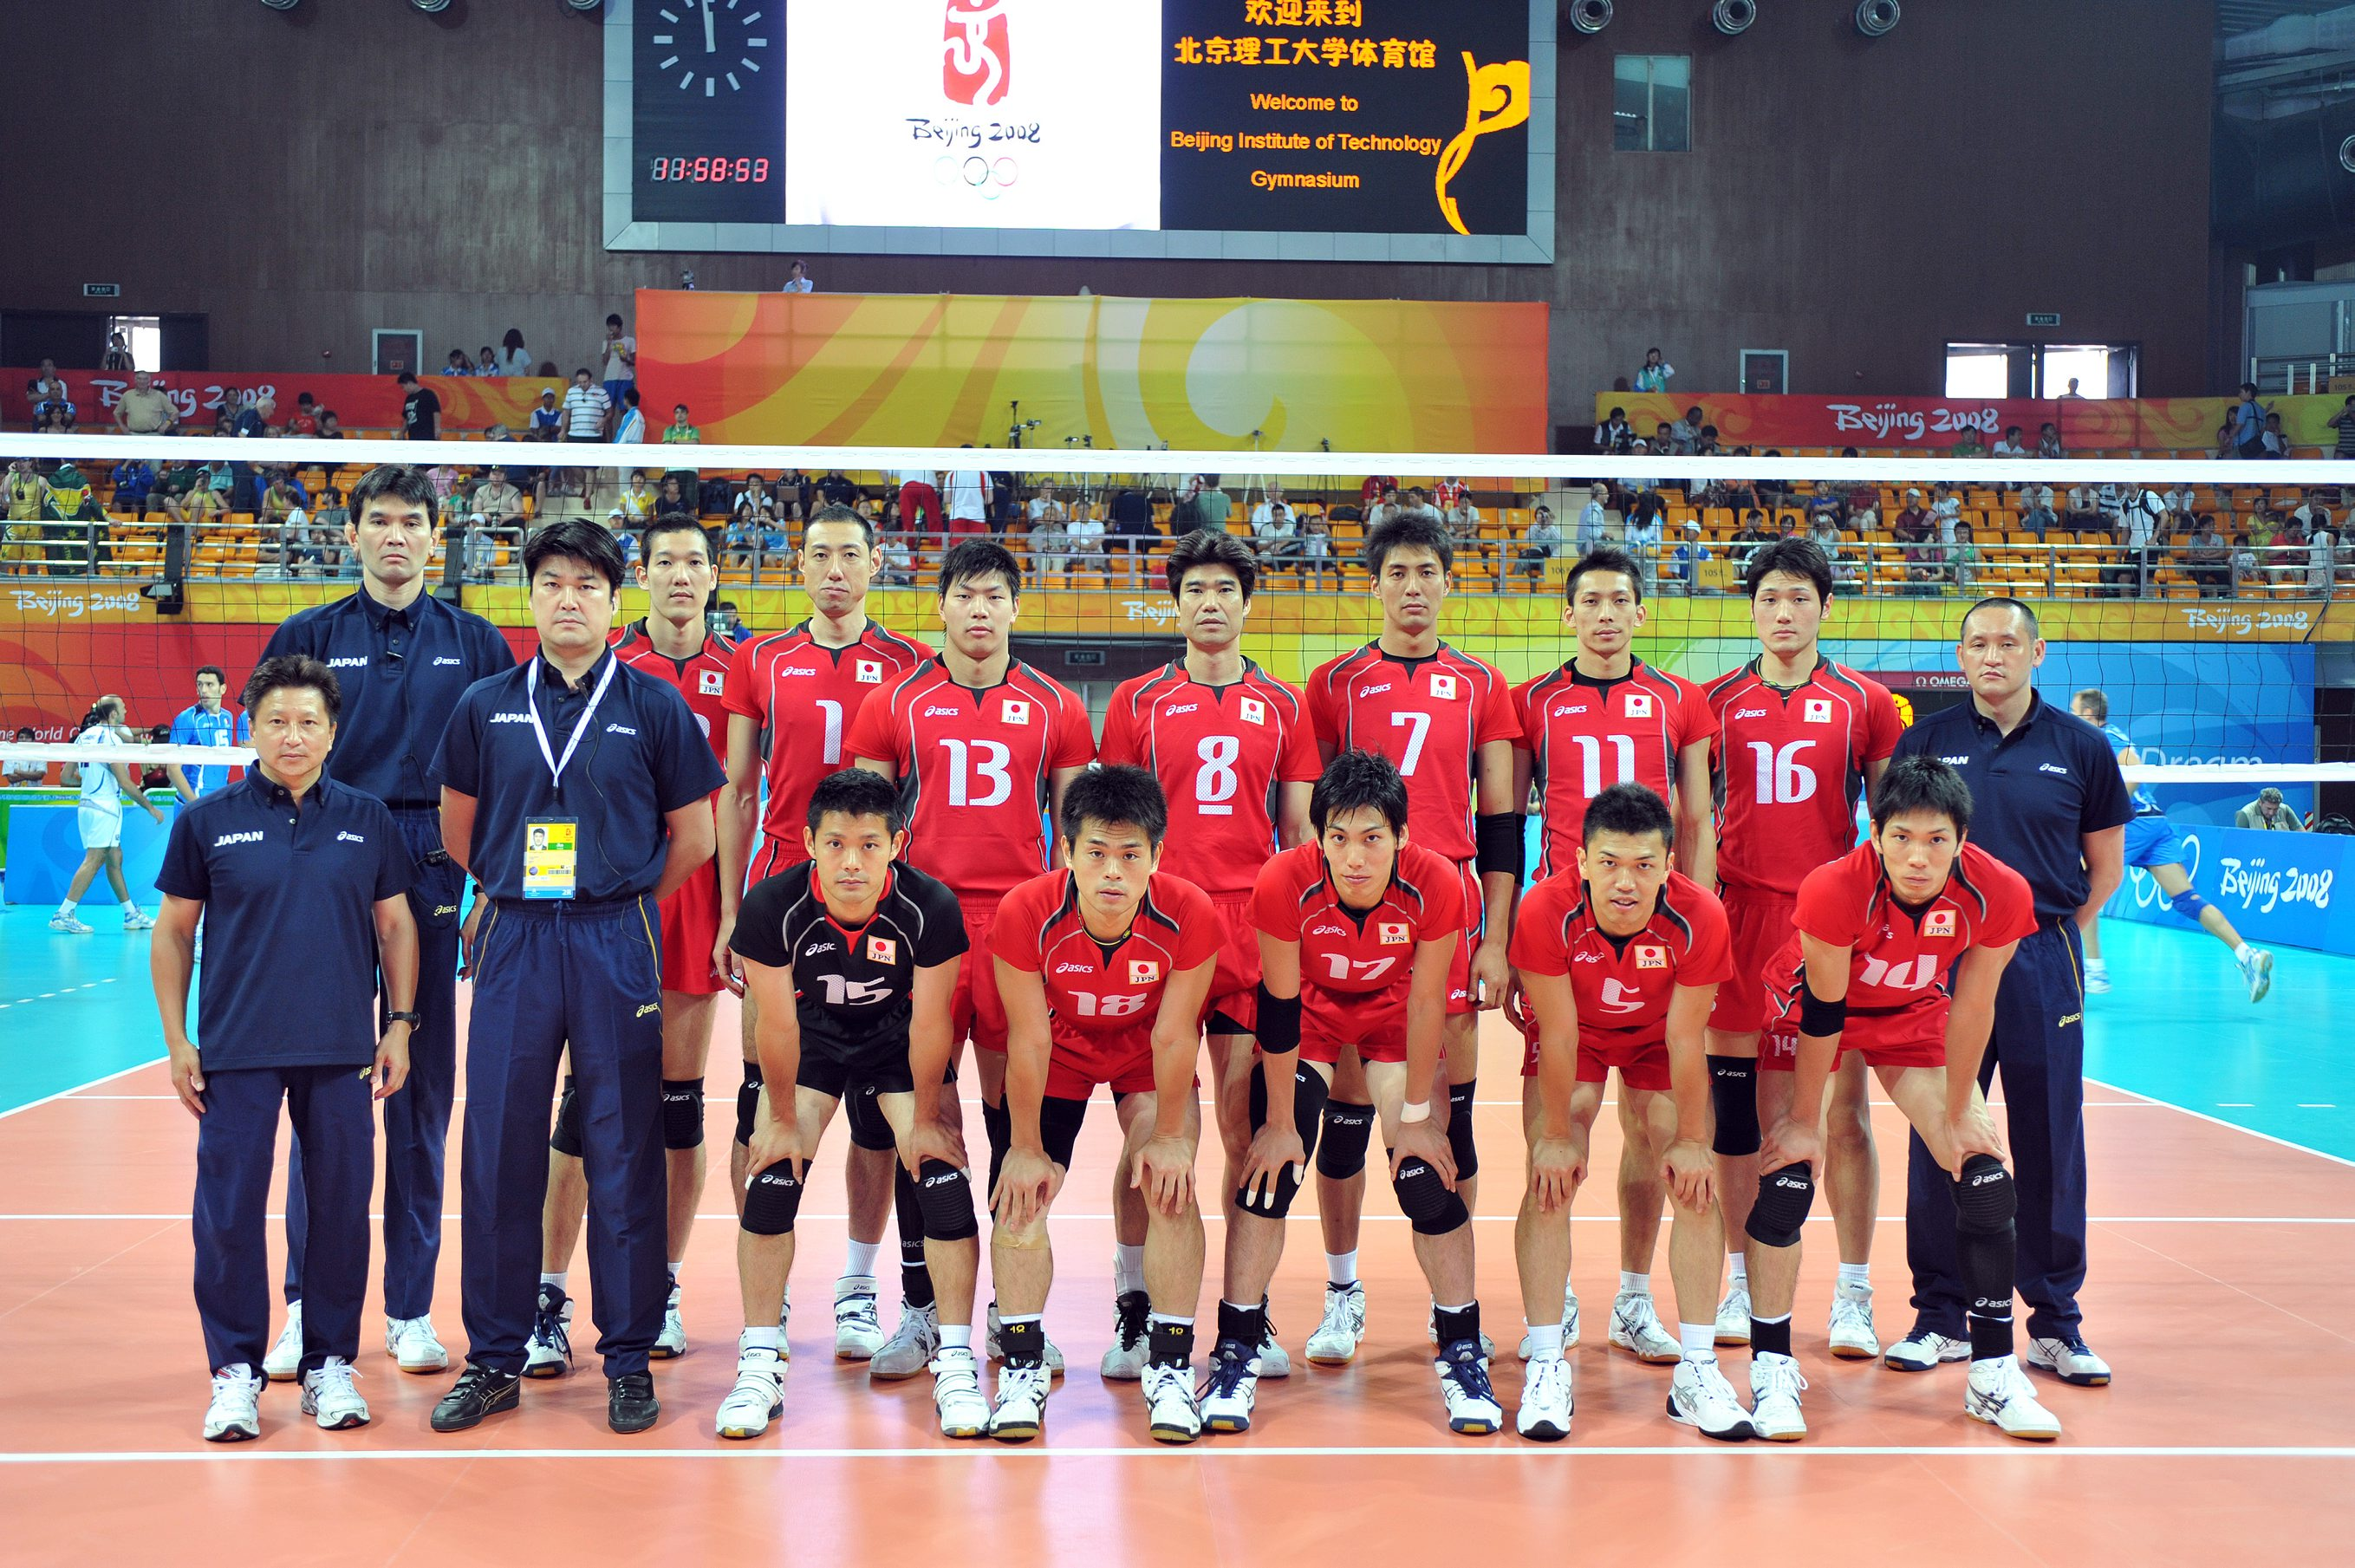 2008 Men S Olympic Games Team Roster Jpn